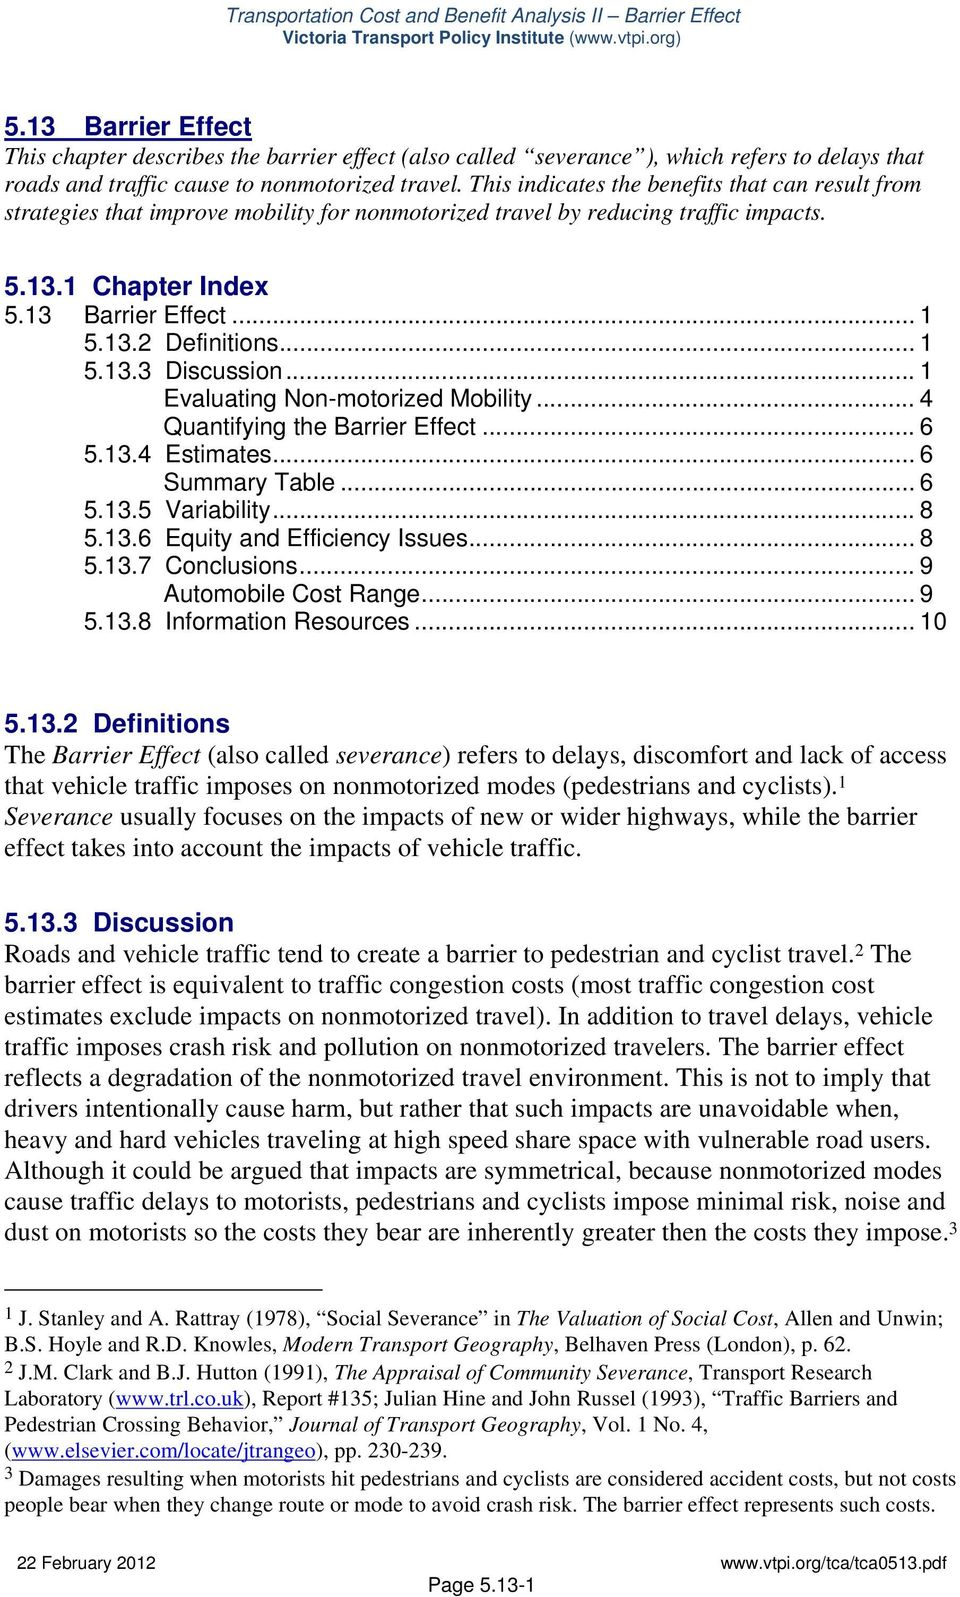 .. 1 5.13.3 Discussion... 1 Evaluating Non-motorized Mobility... 4 Quantifying the Barrier Effect... 6 5.13.4 Estimates... 6 Summary Table... 6 5.13.5 Variability... 8 5.13.6 Equity and Efficiency Issues.